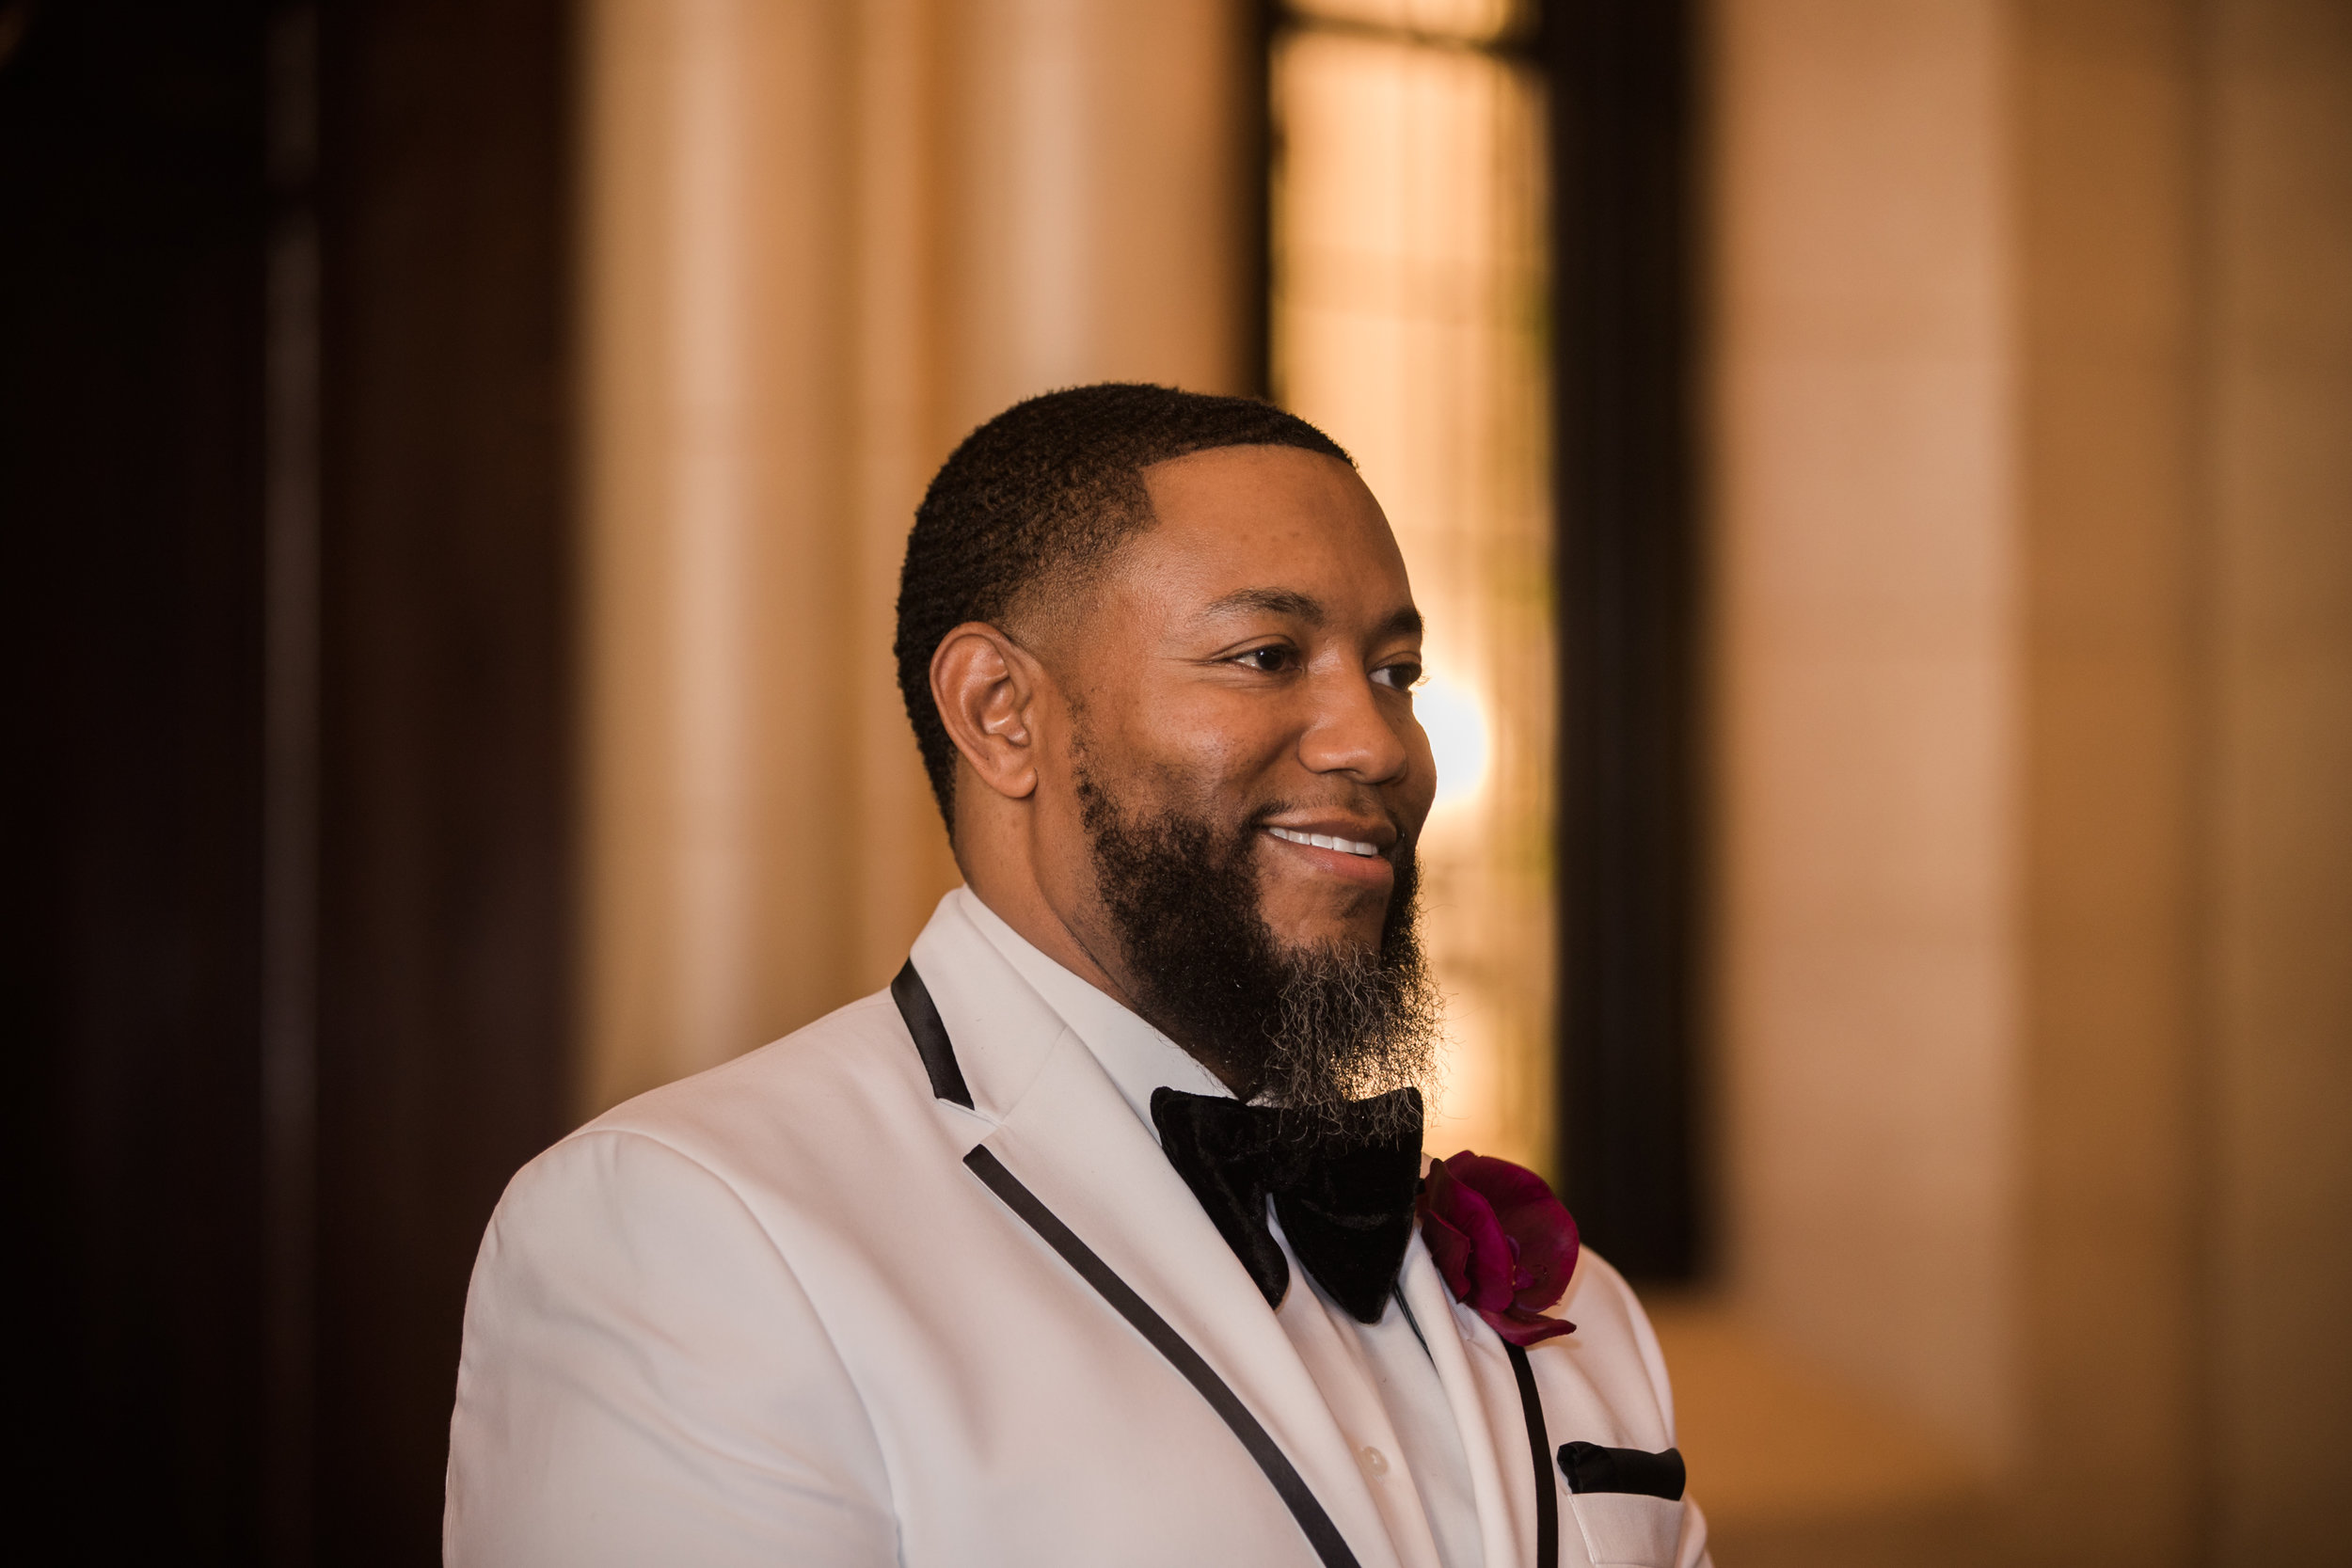 Best Classic Black Bride at The Grand Baltimore Maryland Husband and Wife Wedding Photographers Megapixels Media (42 of 98).jpg